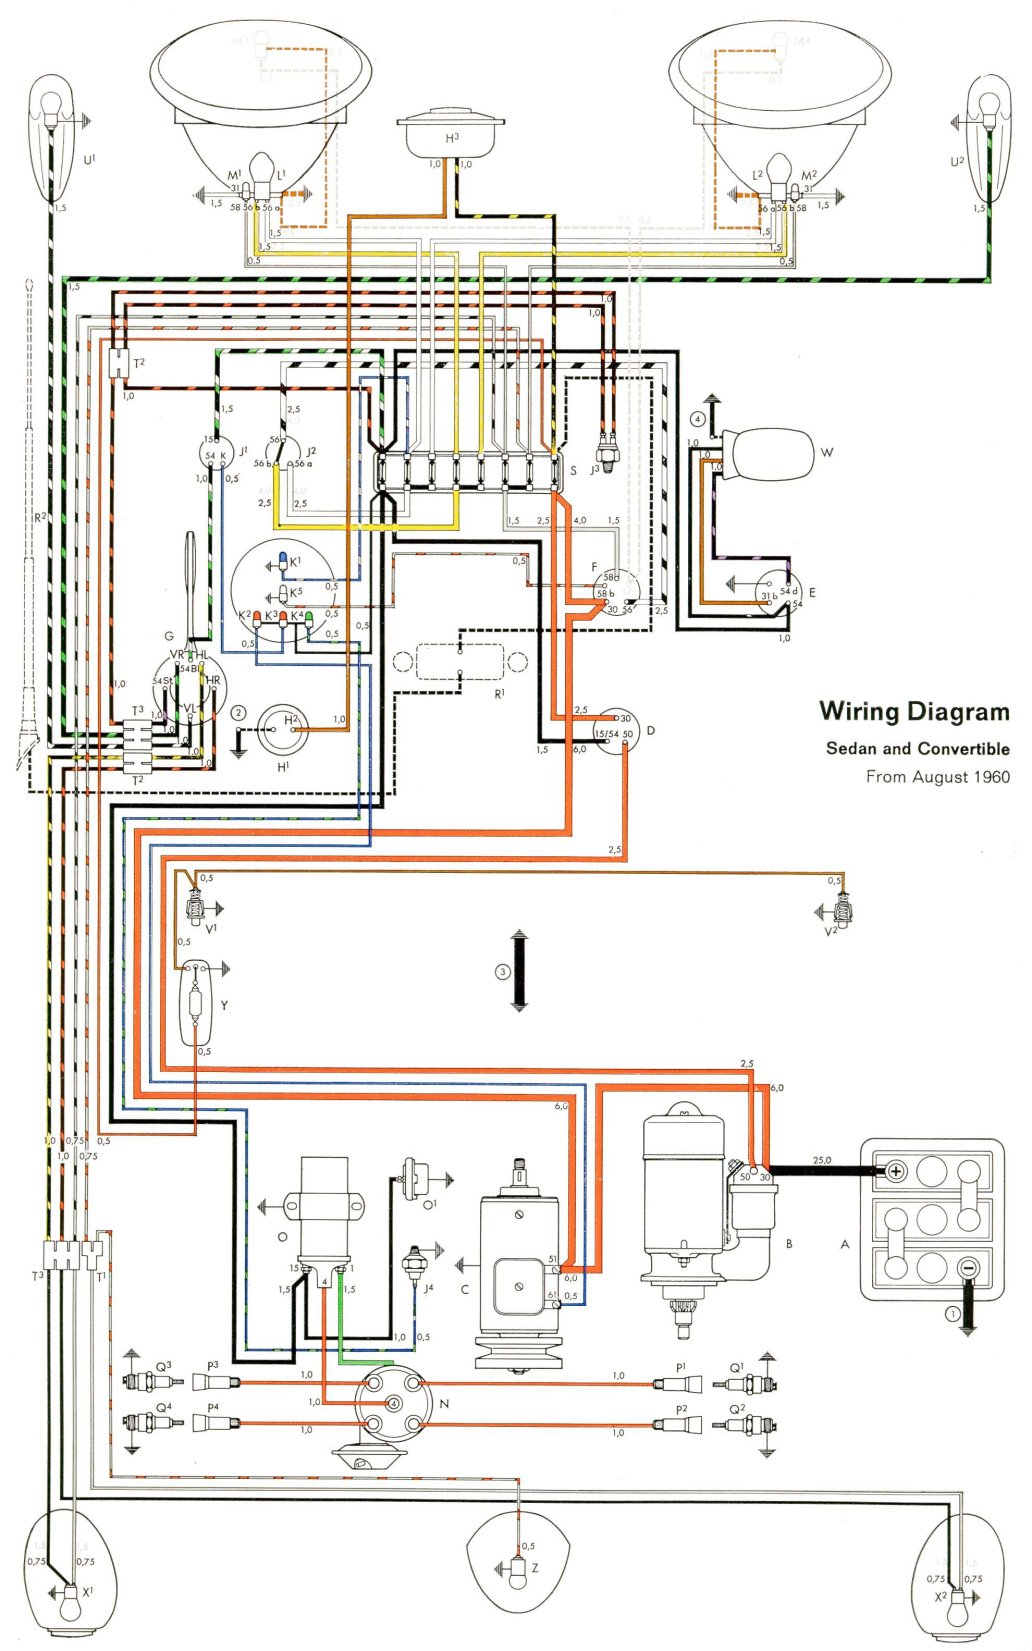 bug_61 1961 beetle wiring diagram thegoldenbug com vw bug wiring diagram at mifinder.co